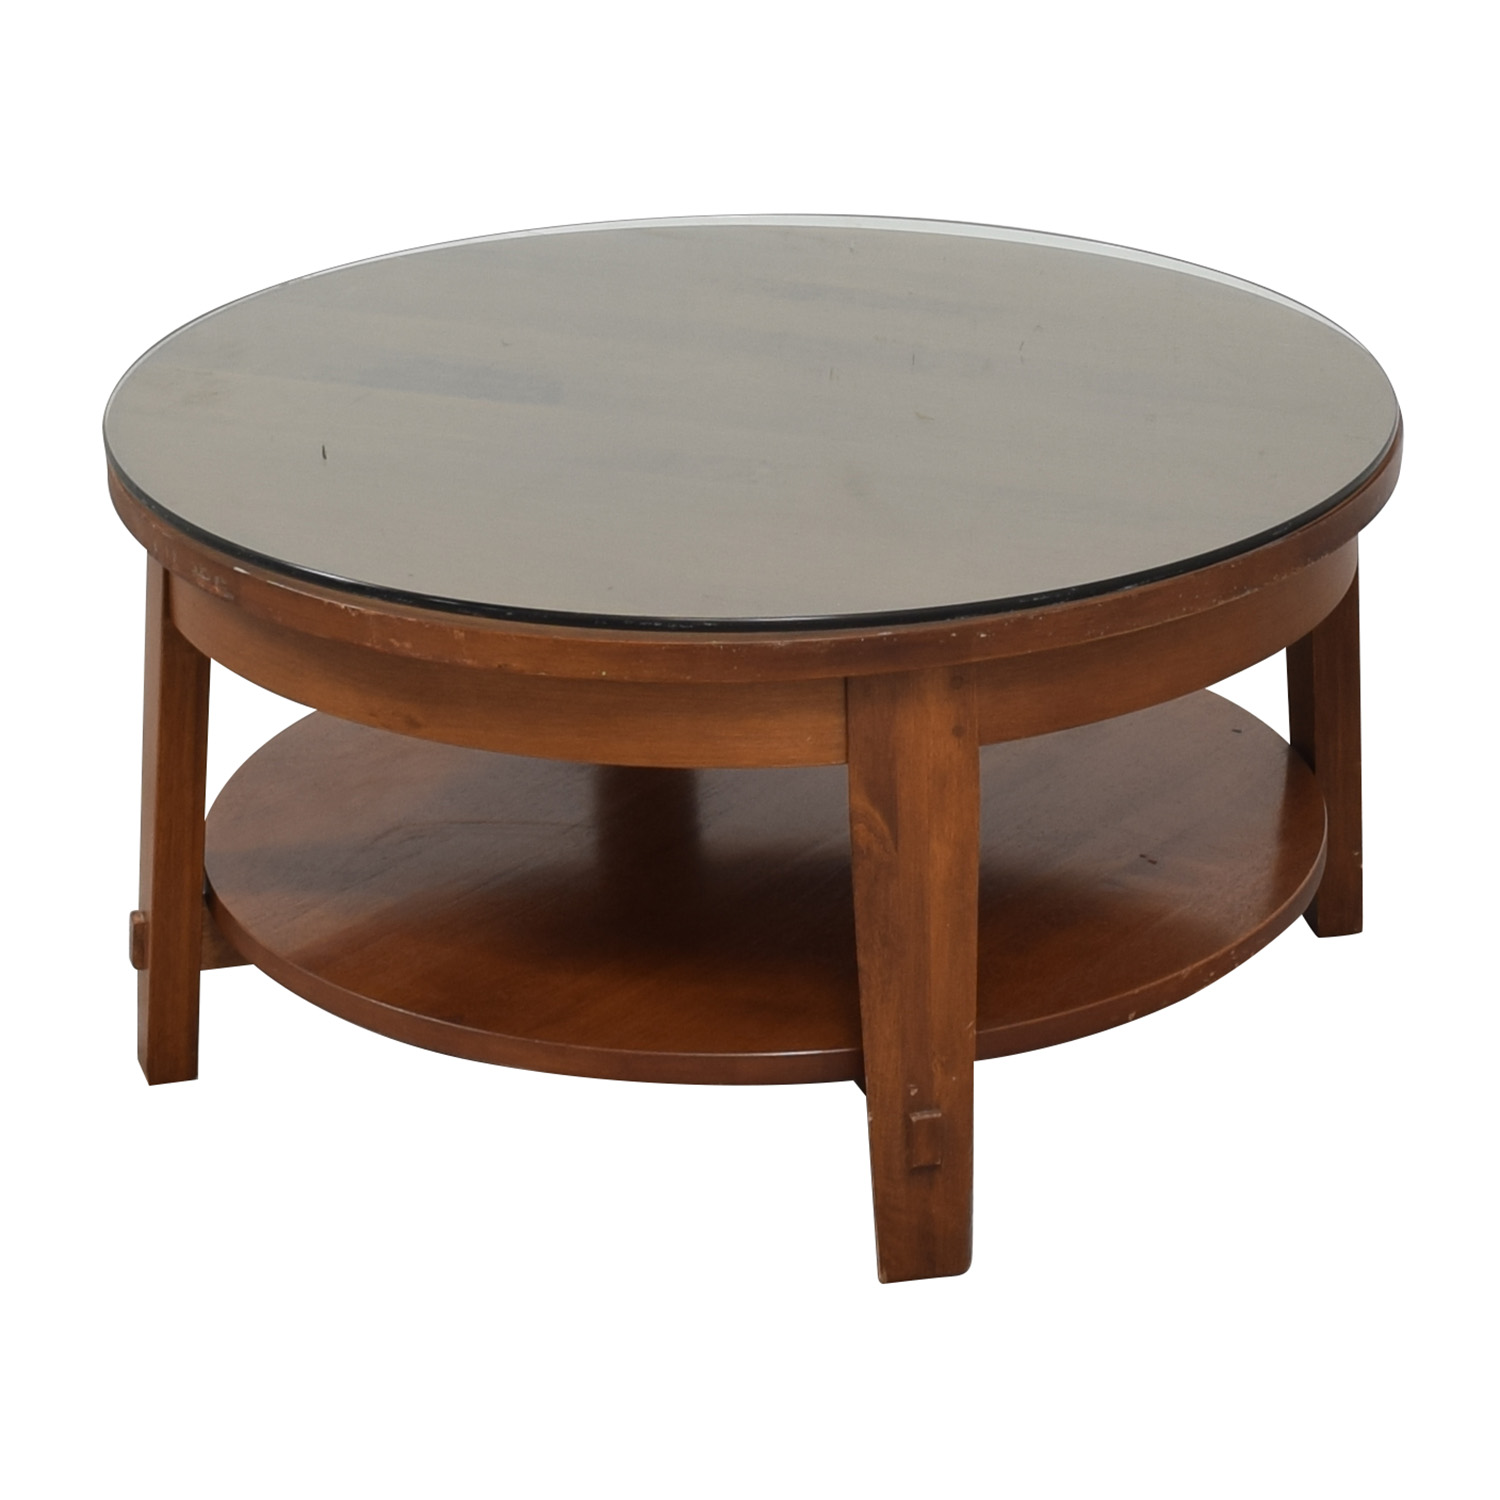 Crate & Barrel Round Coffee Table / Coffee Tables